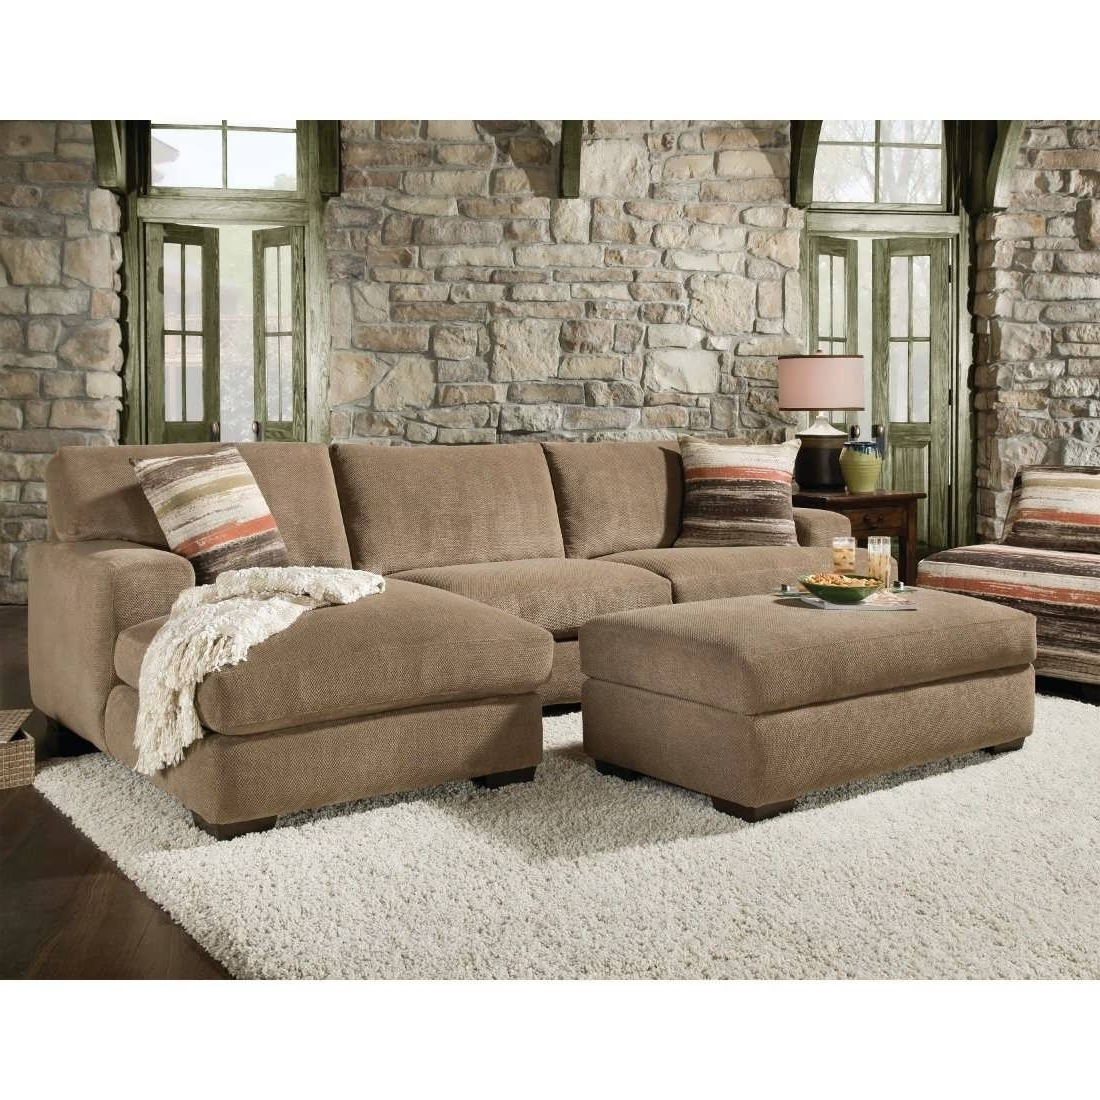 Well Liked Sofa : Wrap Around Couch Cream Leather Sectional Double Chaise Throughout Sectional Chaise Sofas (View 12 of 15)